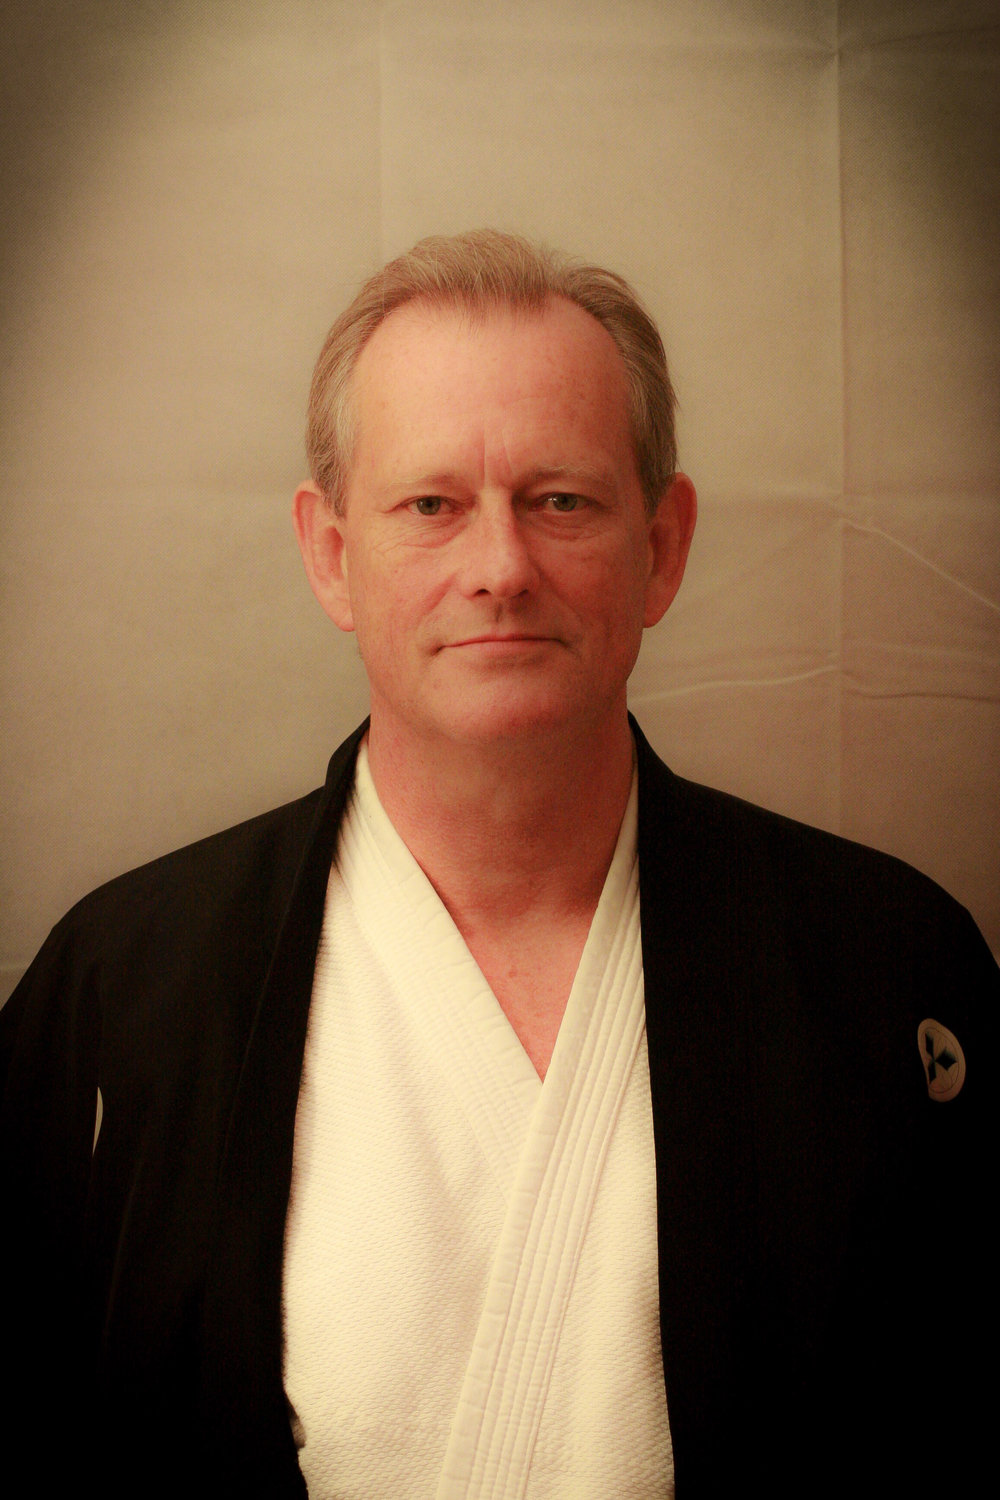 Denis Burke Sensei Isshinkai Founder  Head Teacher